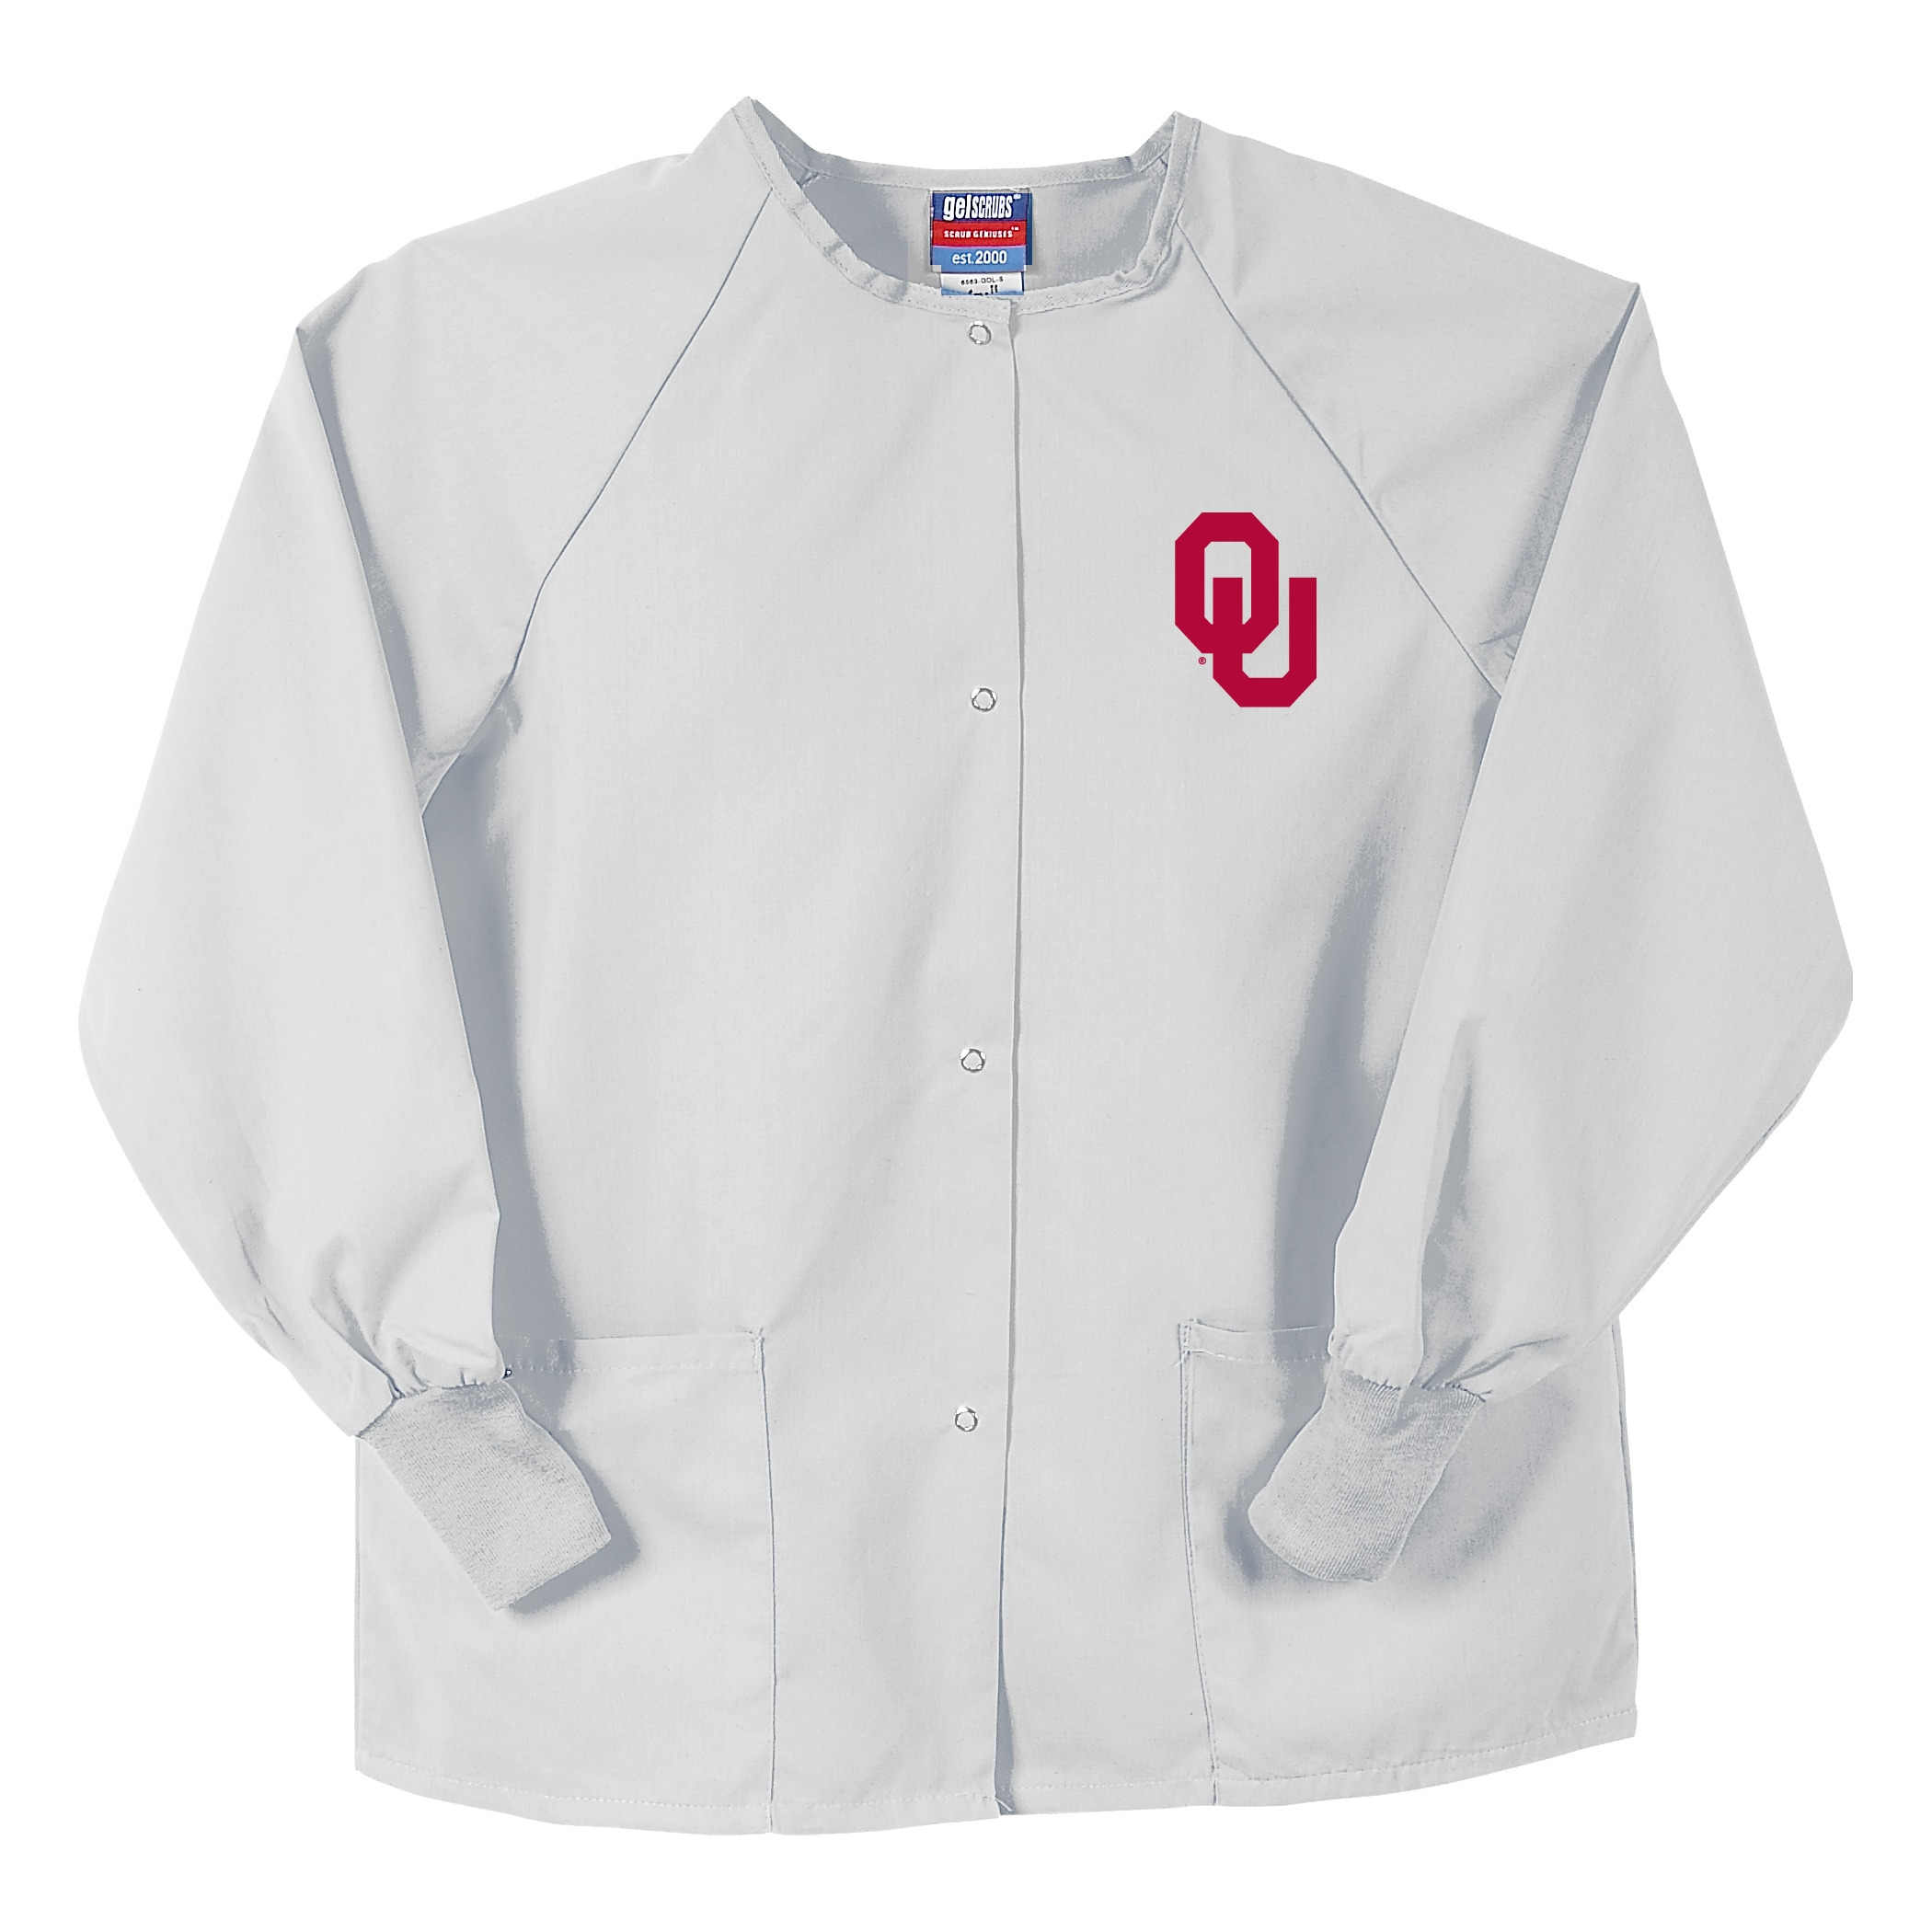 Gelscrubs Unisex White NCAA Oklahoma Sooners Nurse Jacket